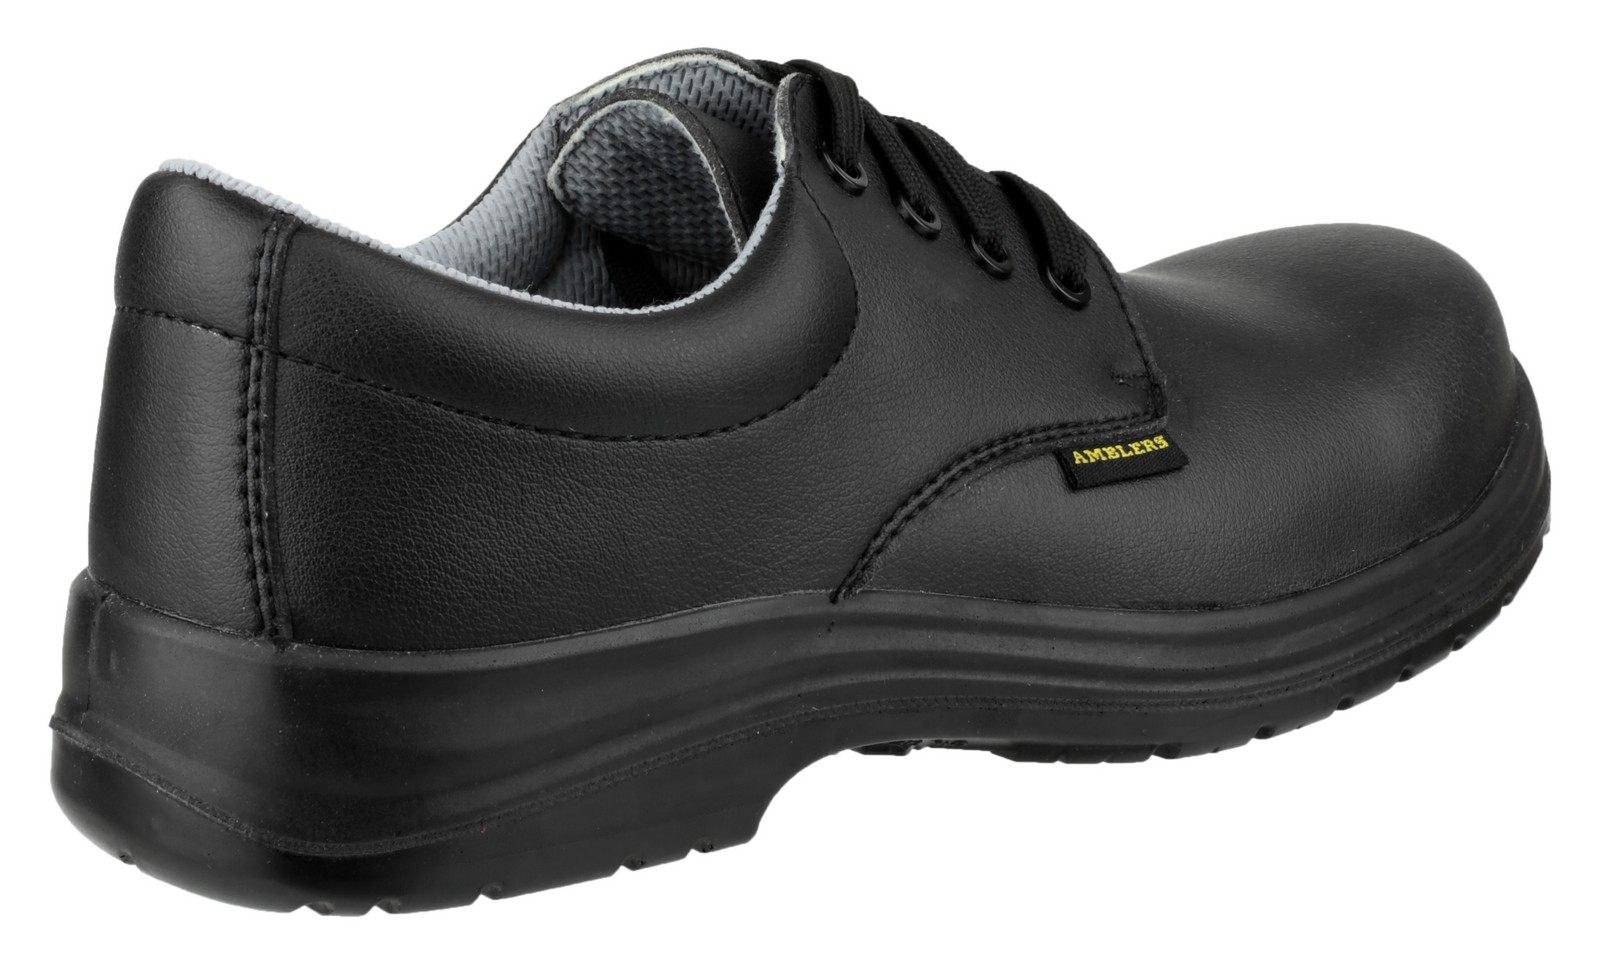 Amblers Safety FS662 Safety Lace Up Black Size 10 R9iILg98B